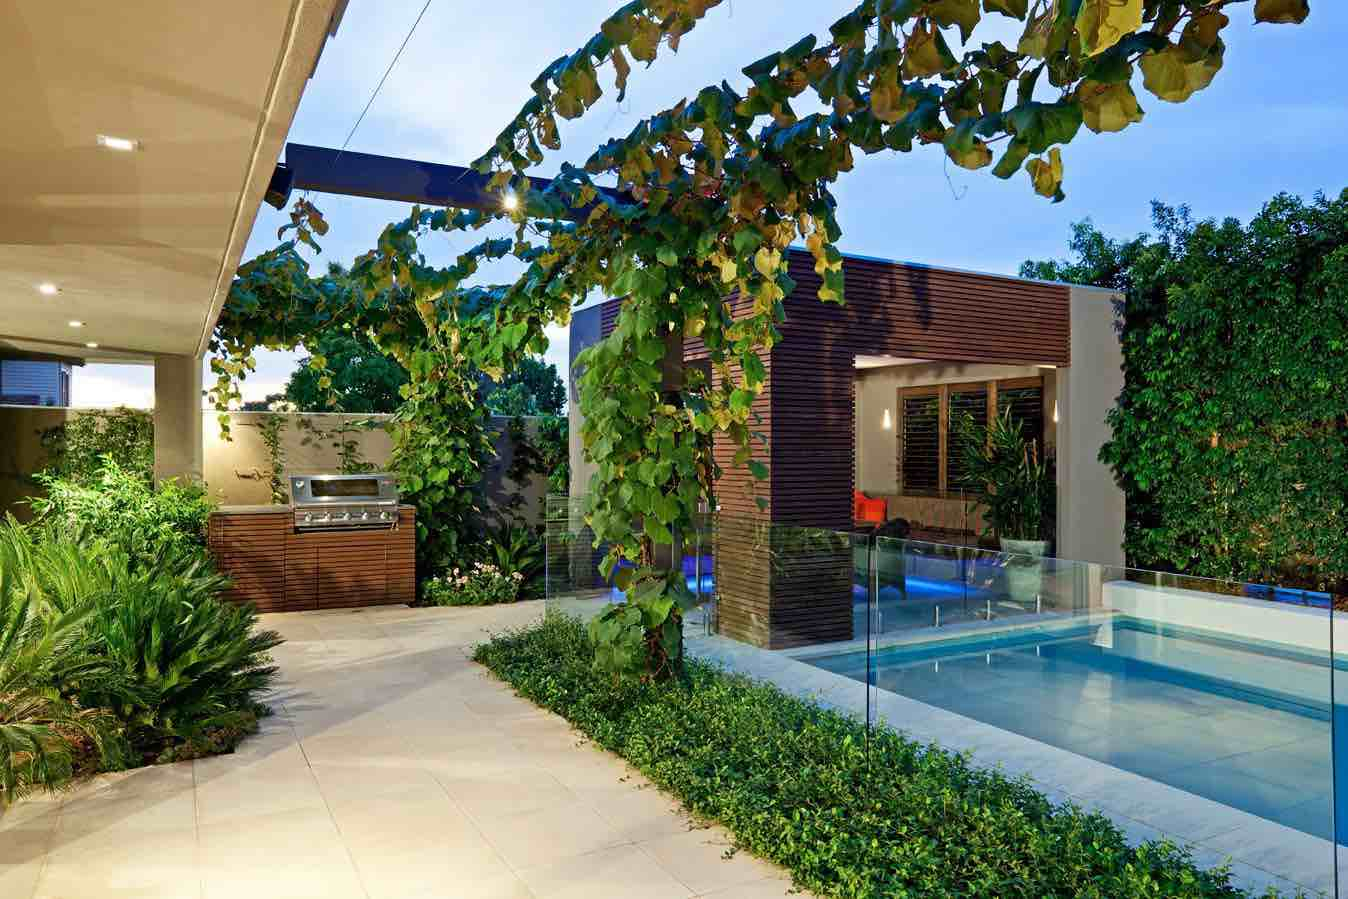 41 backyard design ideas for small yards worthminer for Pool design ideas australia